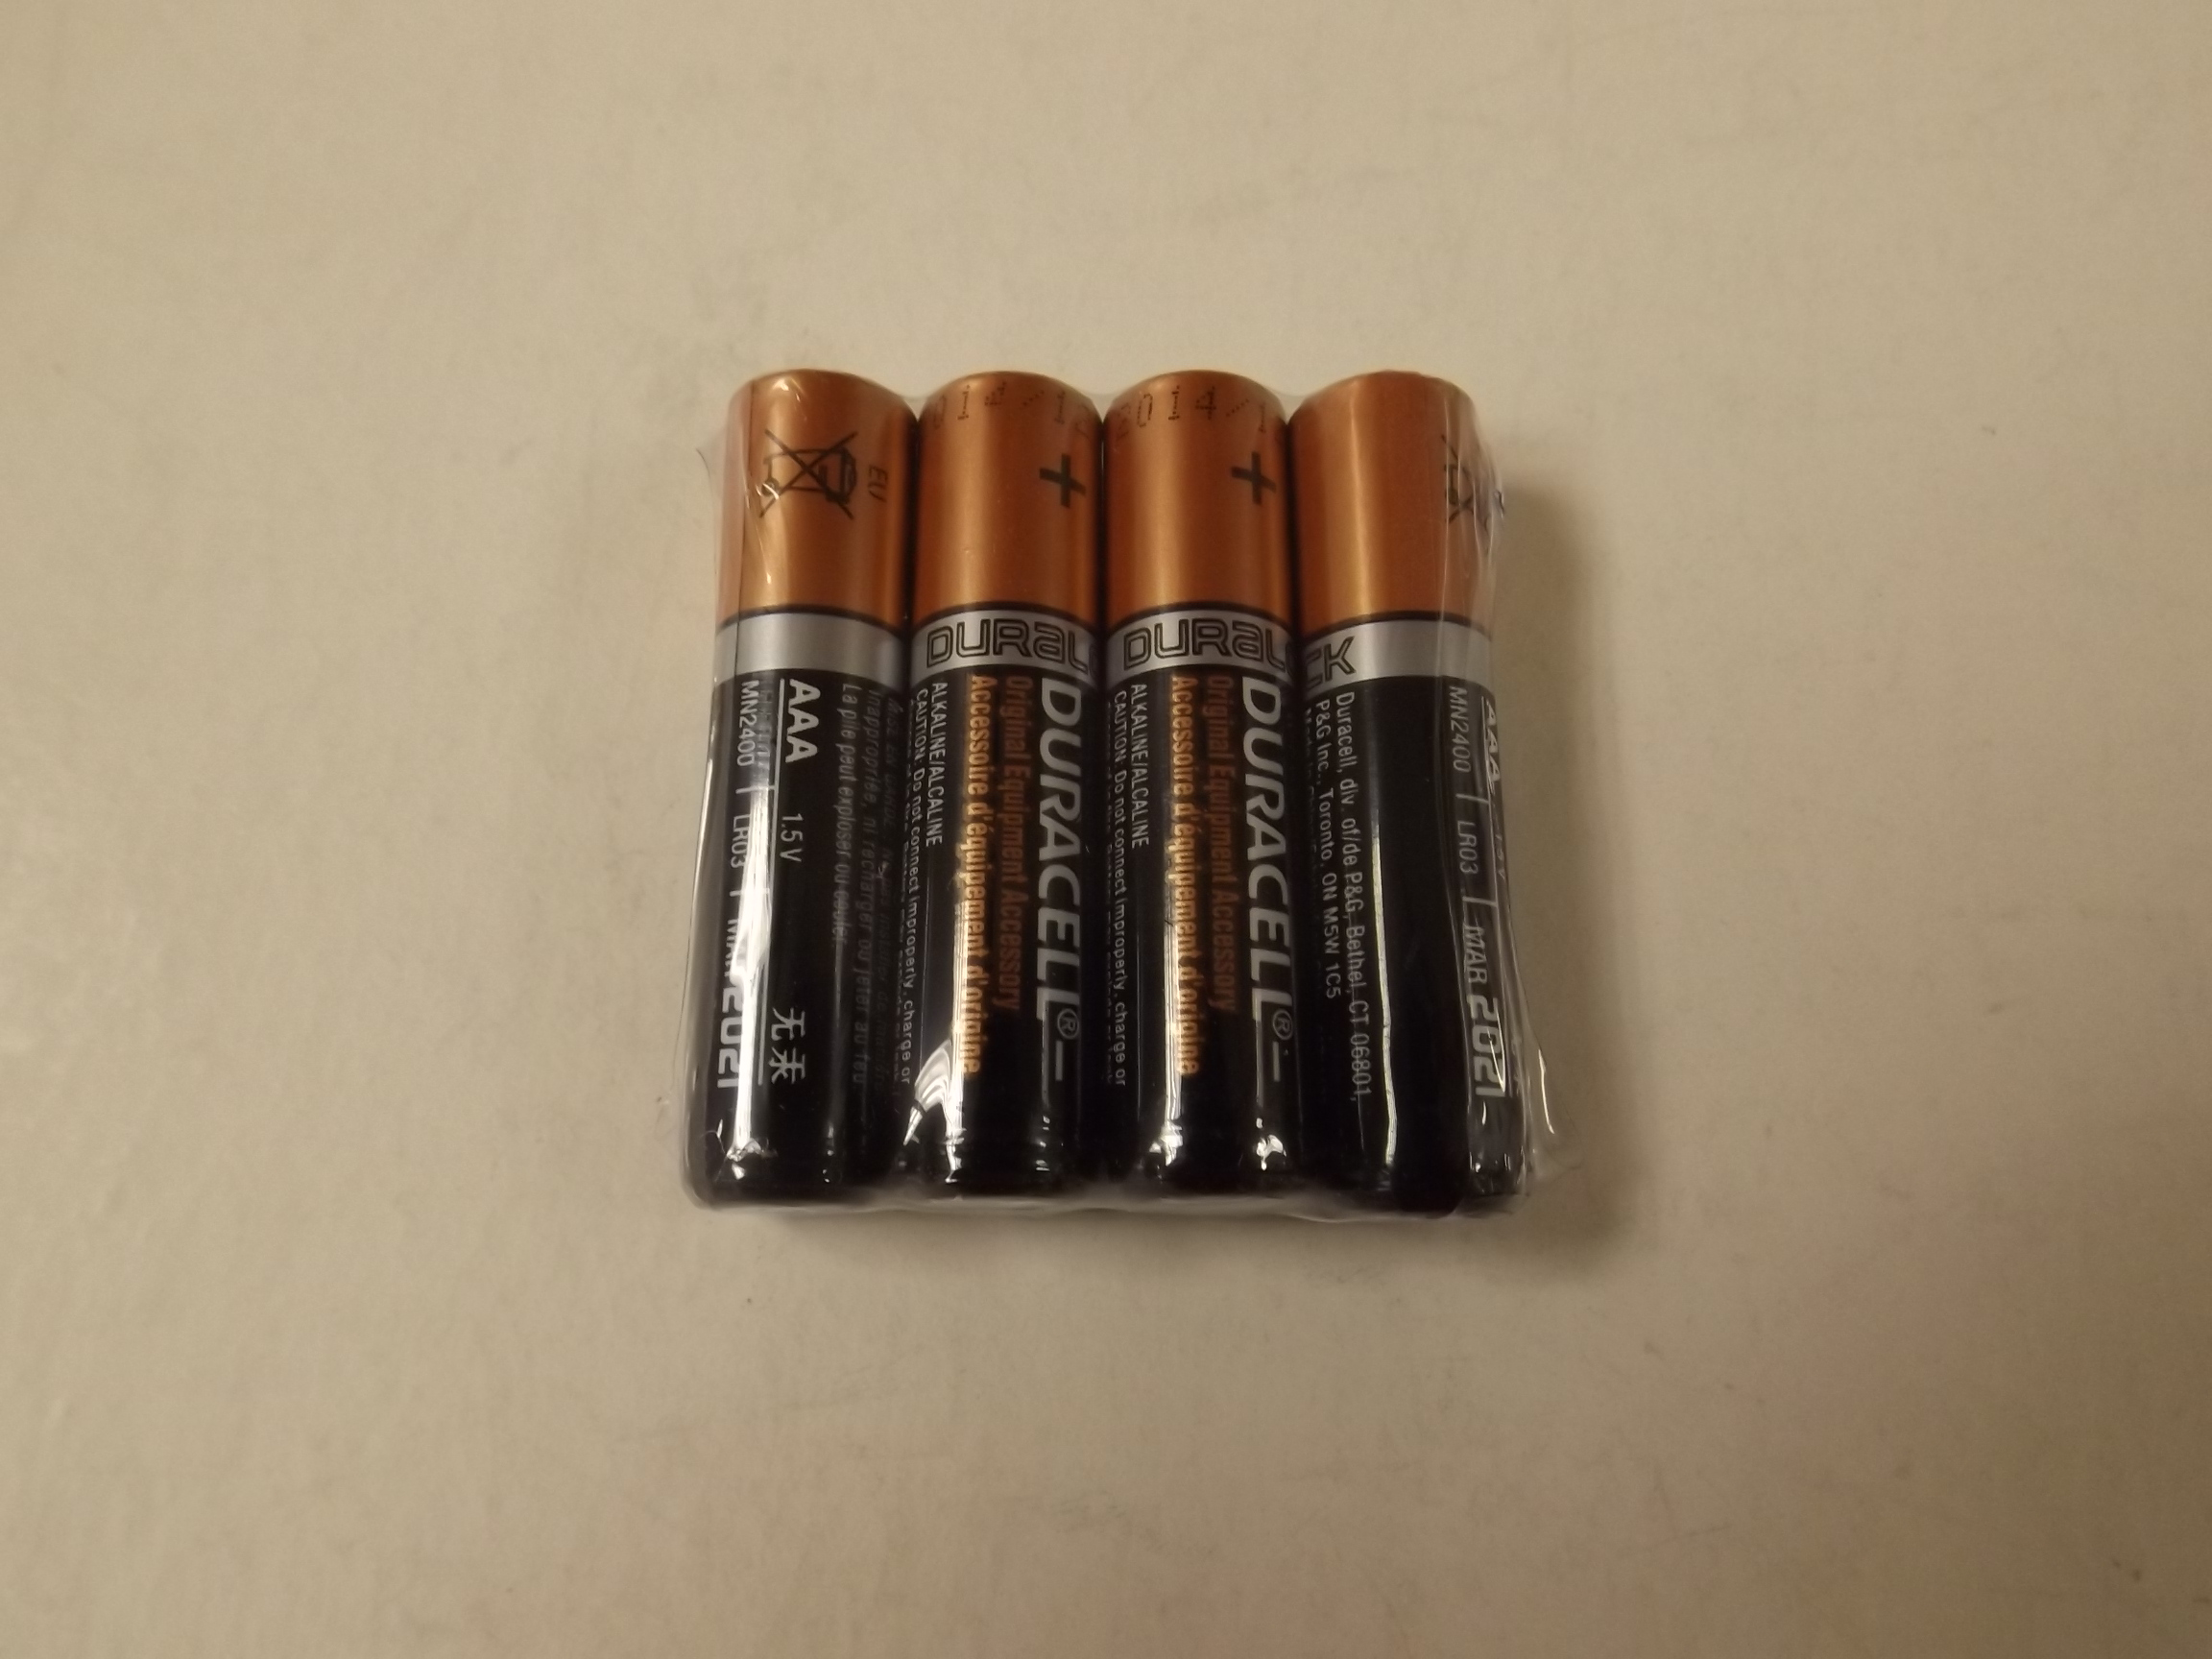 DURAAA New! Duracell AAA Alkaline Batteries-- 4 Pack!